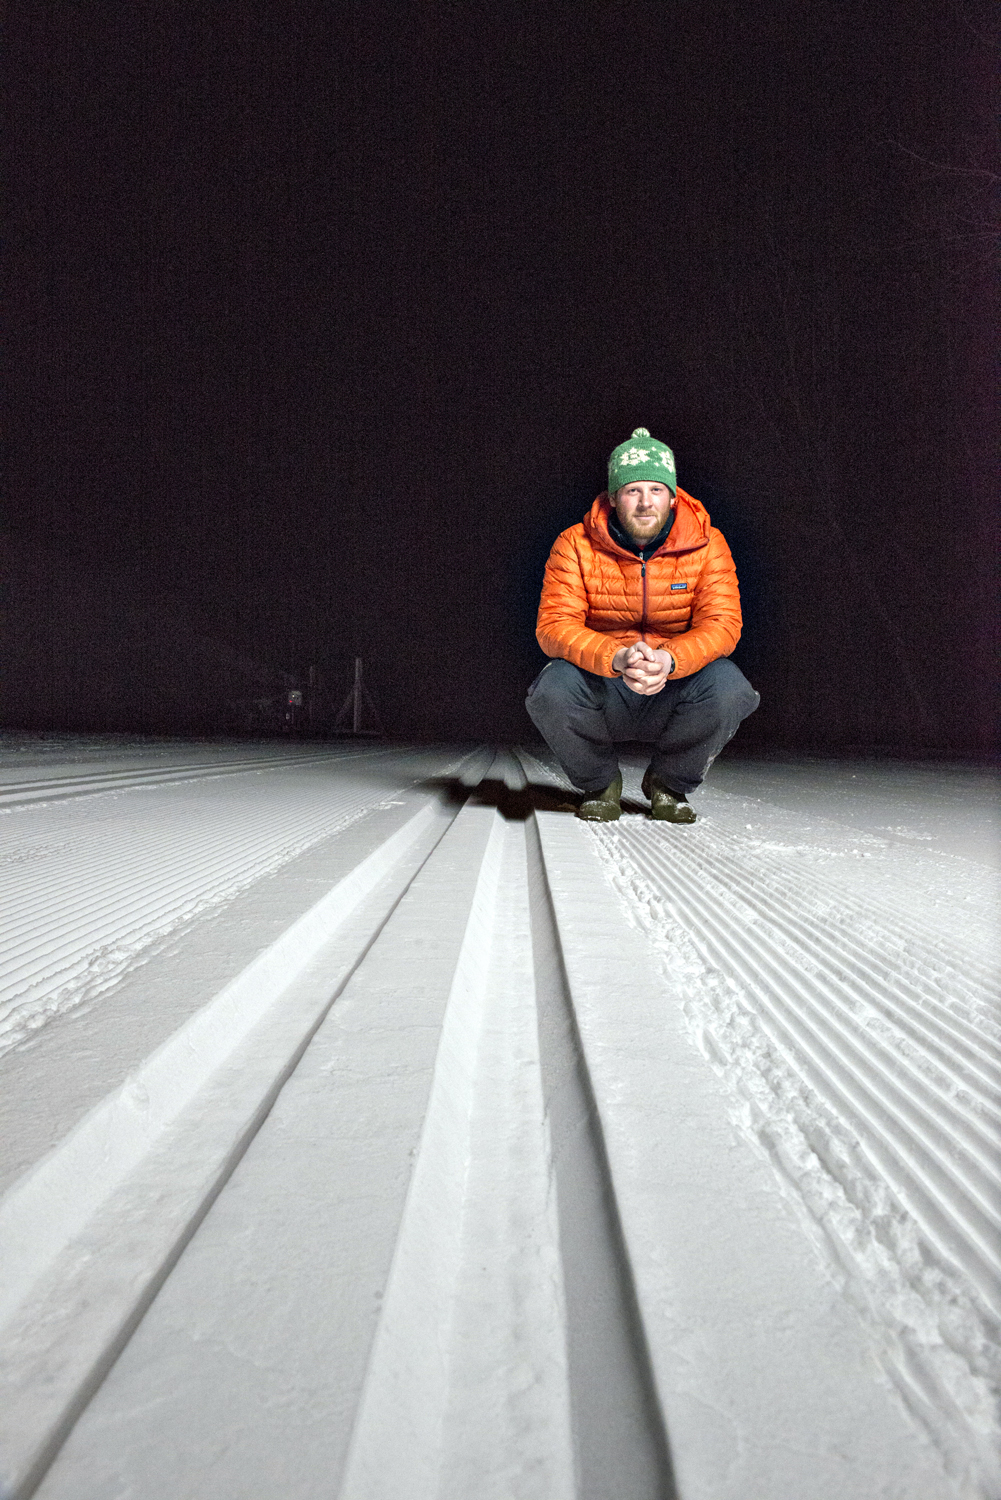 Dartmouth alum Lucas Schultz, Snowmaker, Craftsbury Outdoor Center, Craftsbury, Vermont.